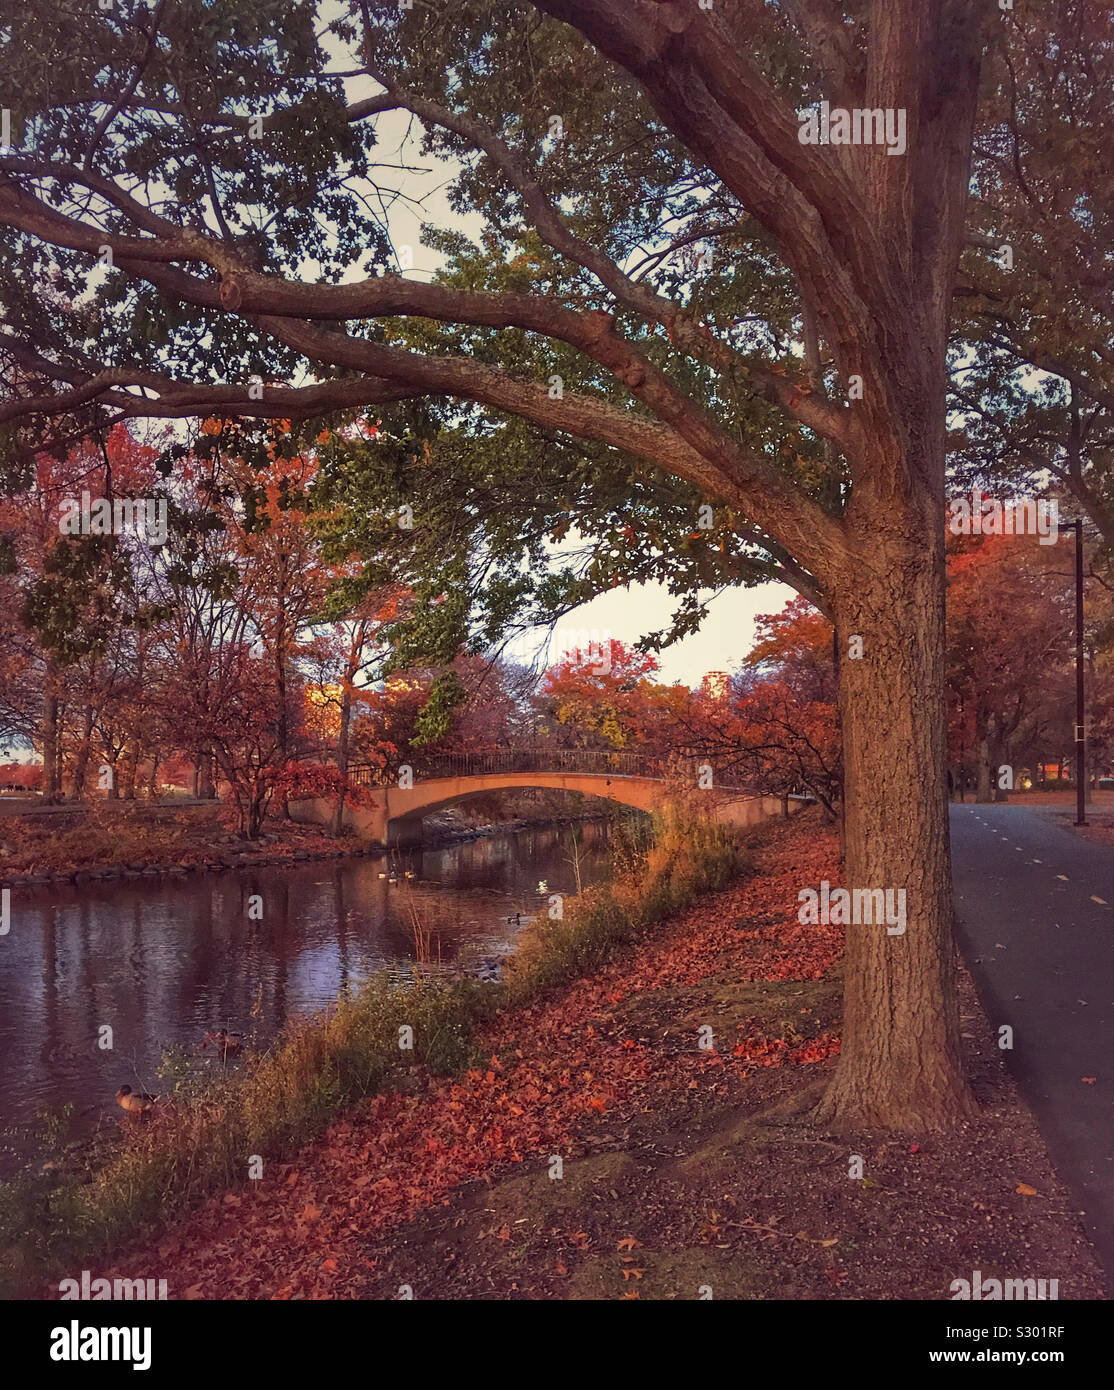 Escena de otoño en el Charles River Esplanade, Boston, Massachusetts. Foto de stock